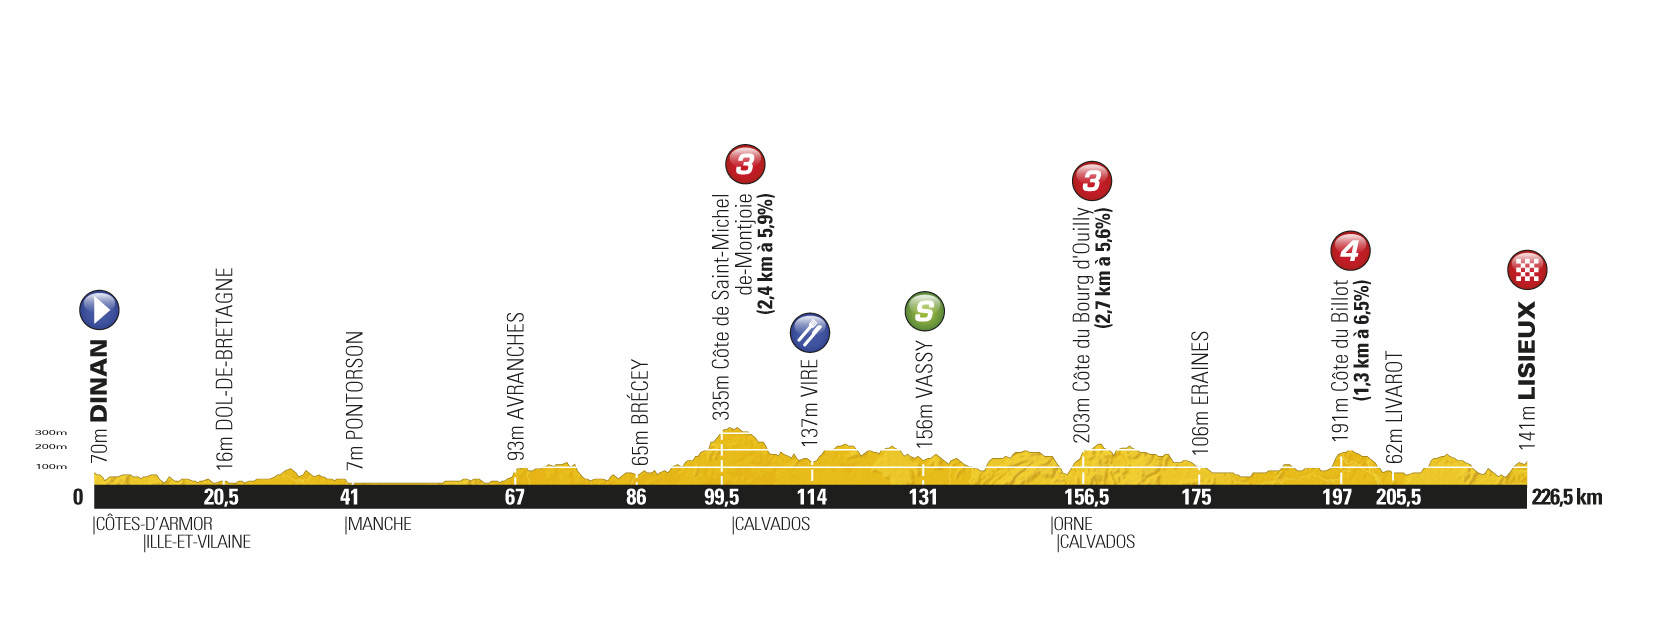 Stage 6 profile, Tour de France 2011